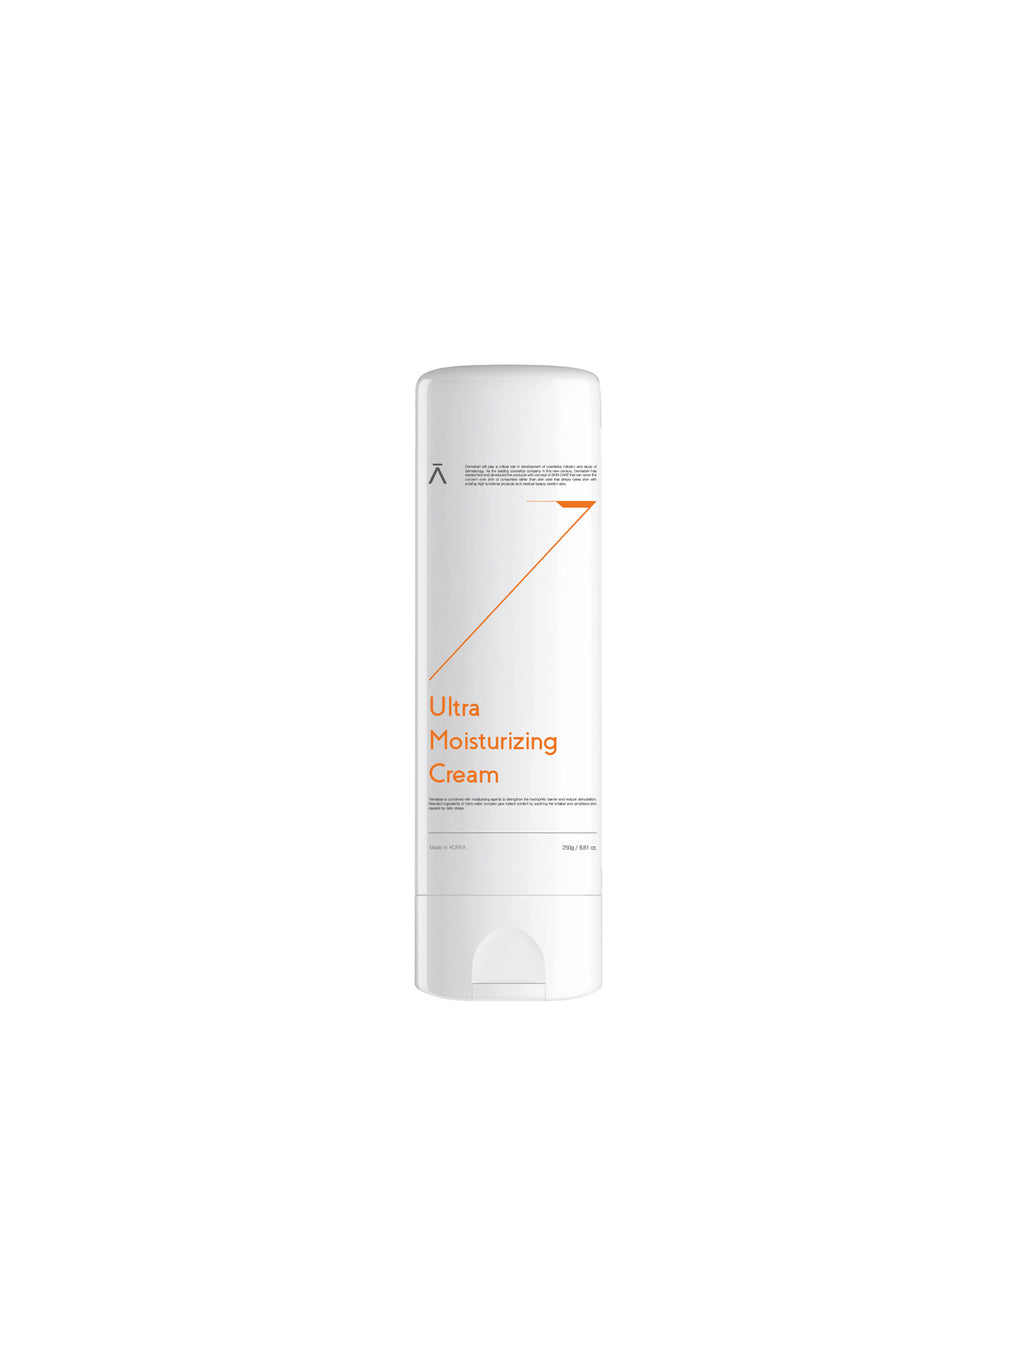 Ultra Moisturizing Cream (Intensive Moisturizing Cream) Moisturiser by DERMABELL PRO